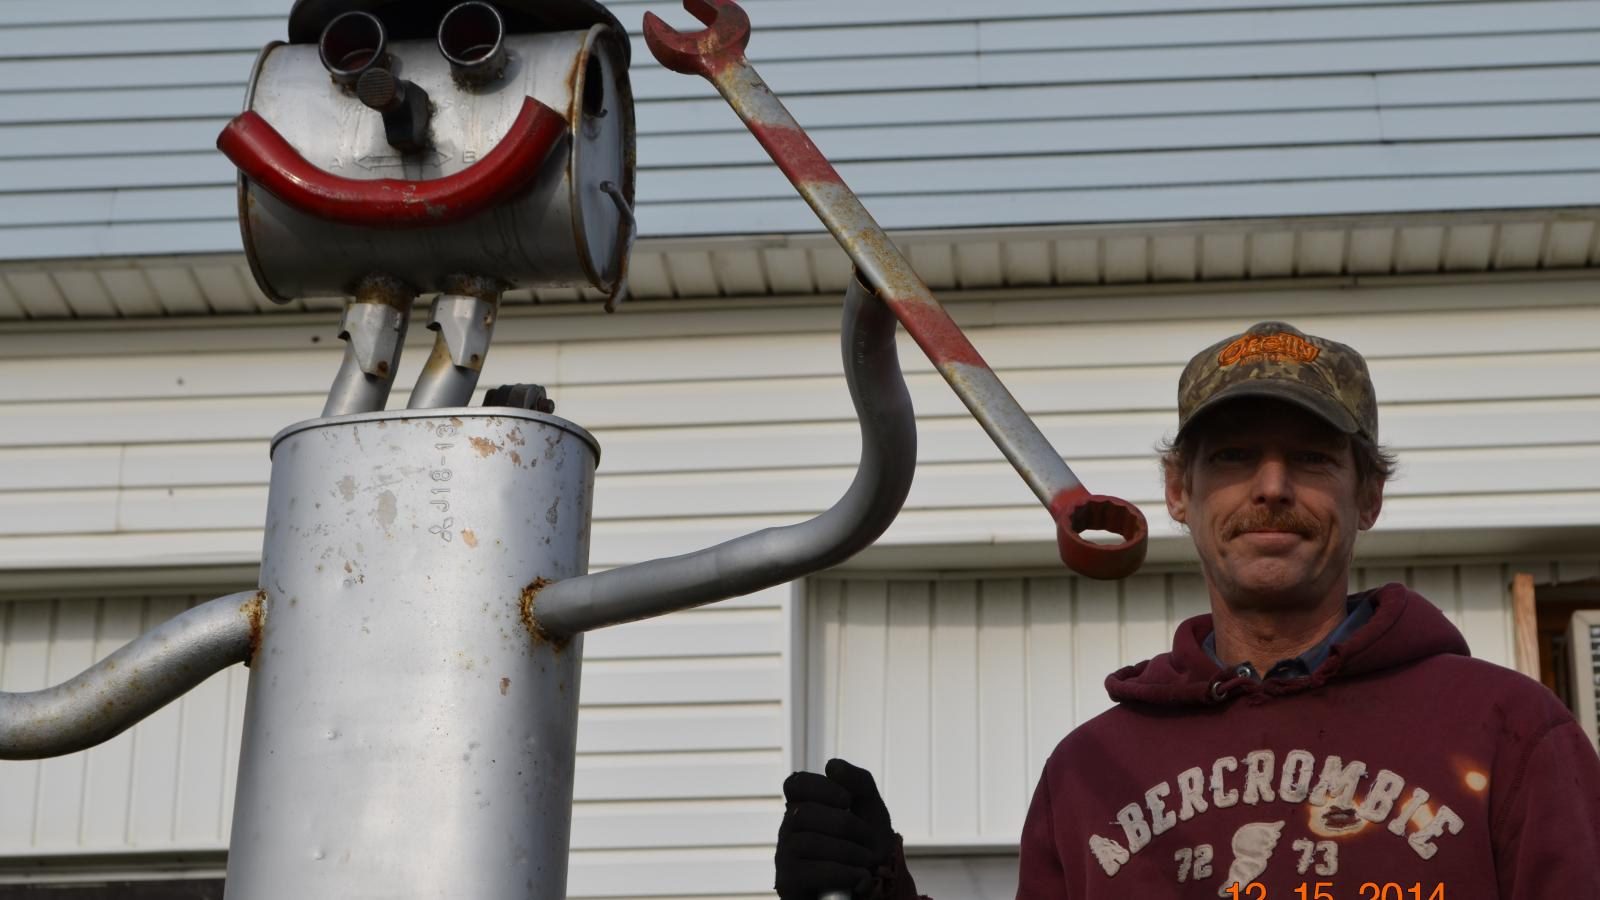 Lonnie w/ Muffler Man, Muffler Shop & Welding/Tire Station, New Rome, OH